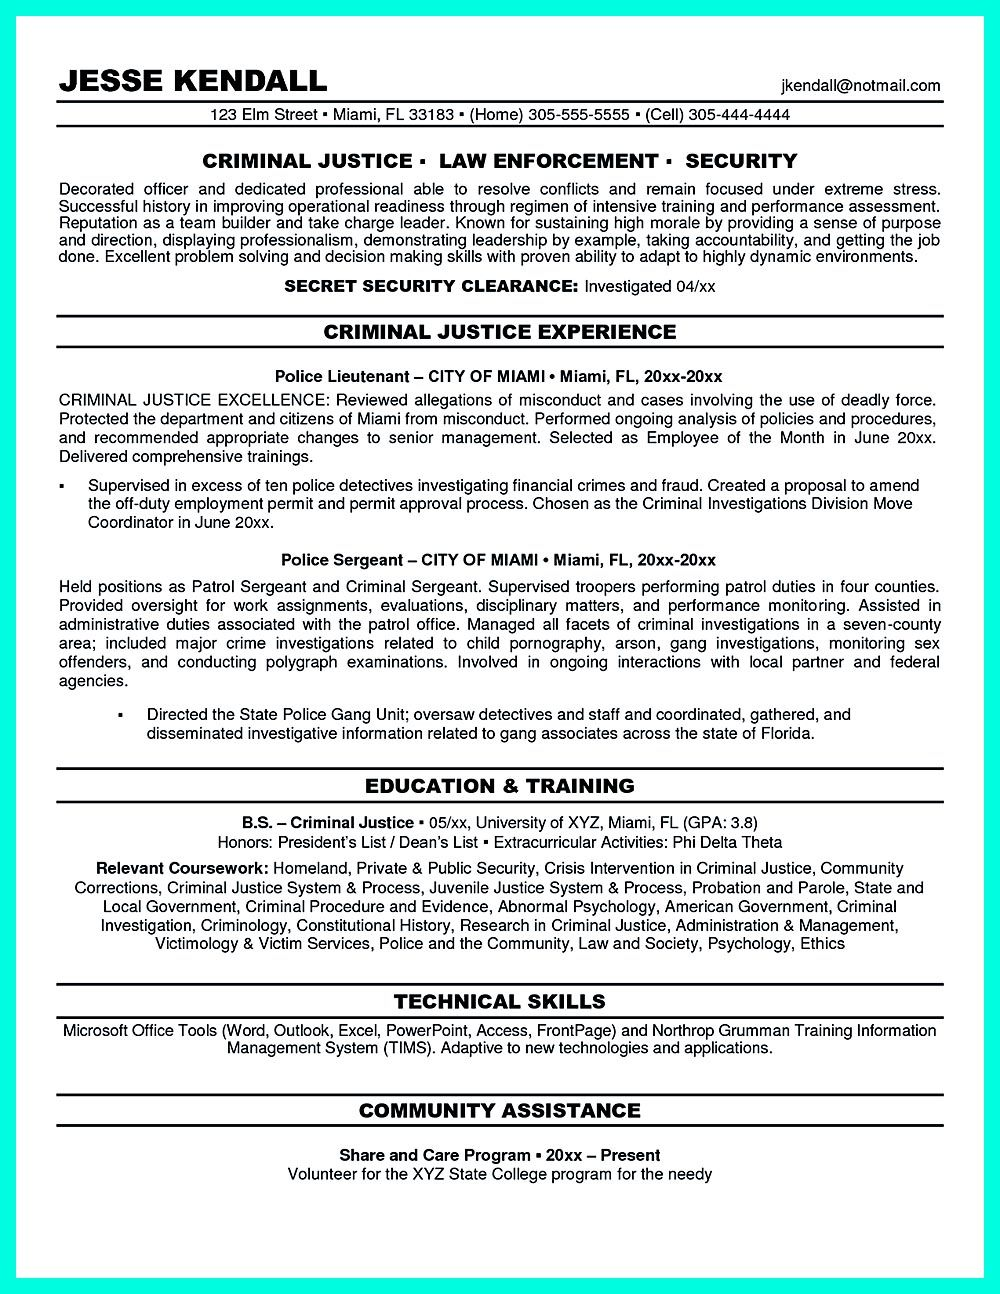 Criminal justice resume uses Summary section of the qualifications ...